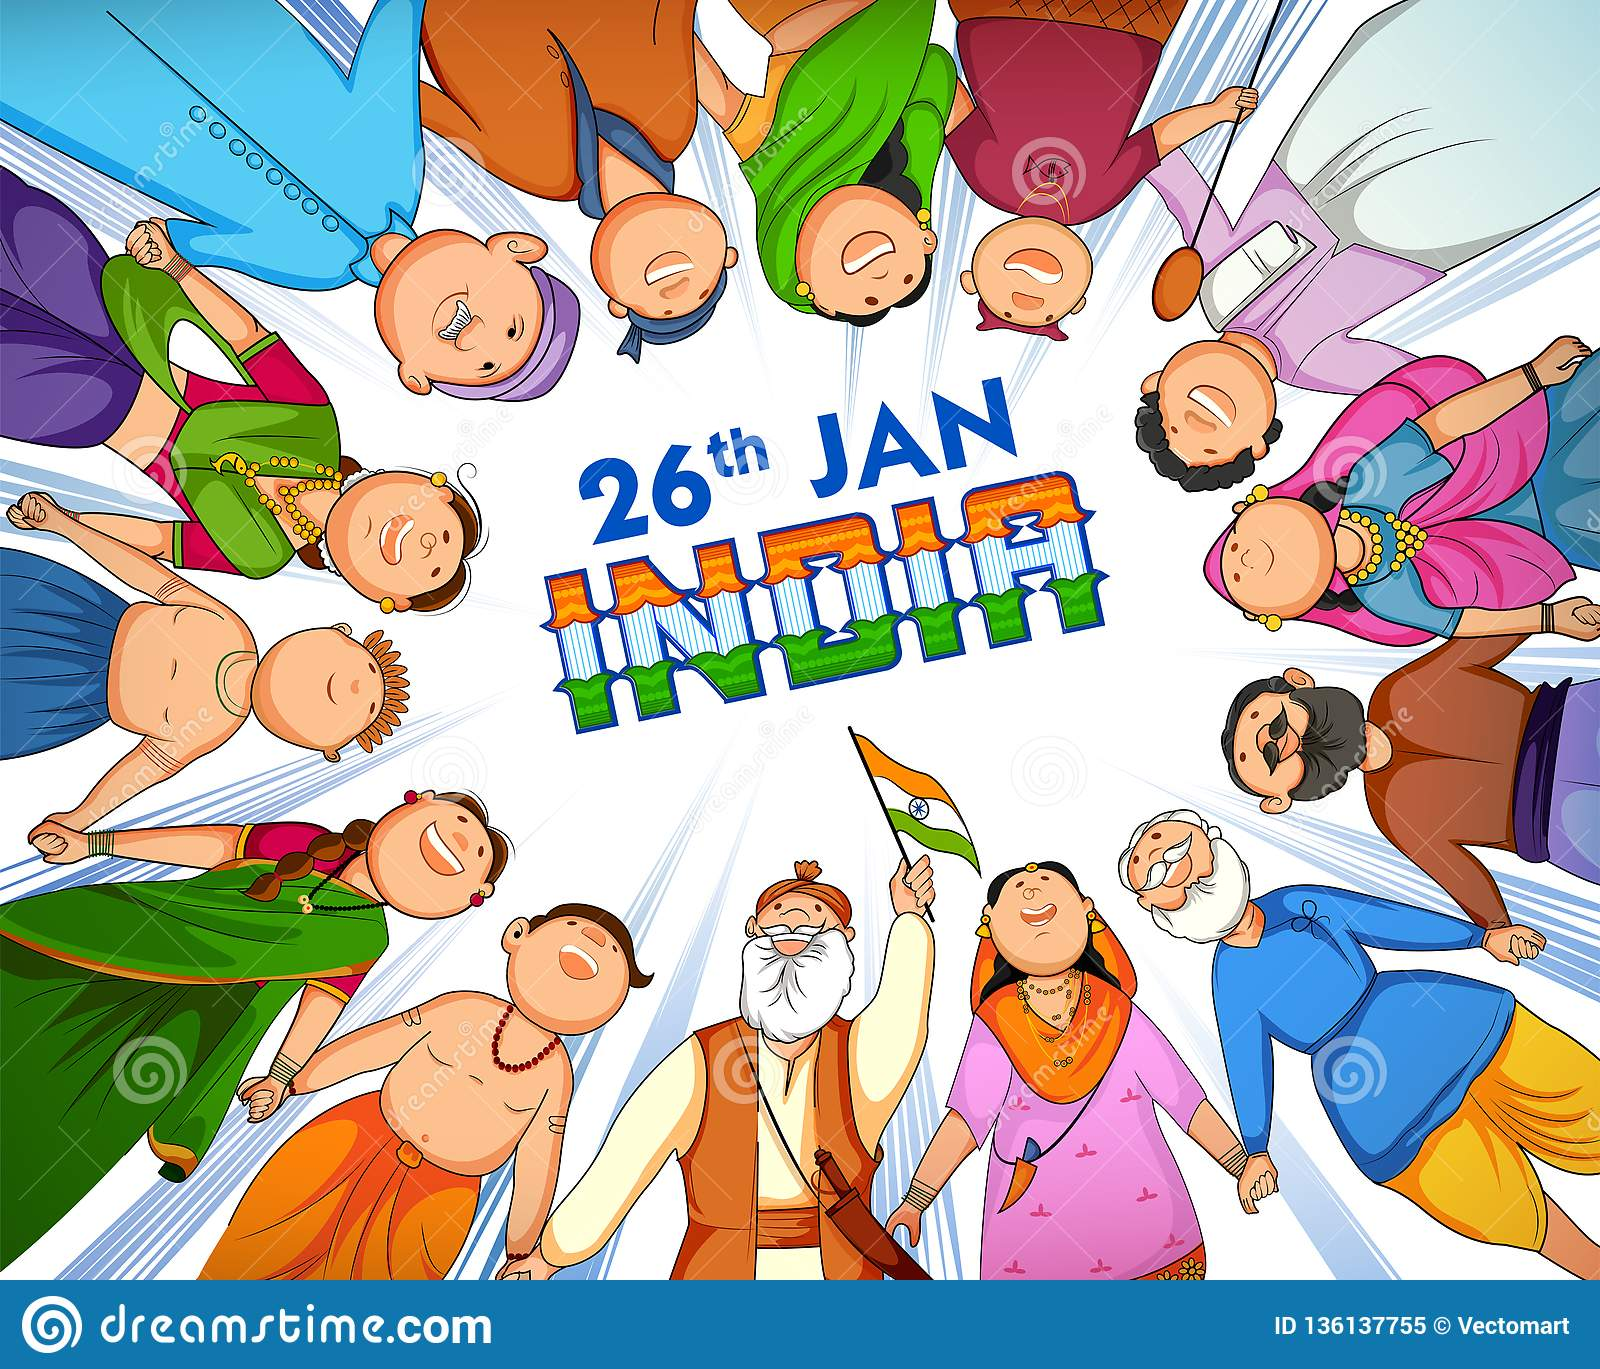 People Of Different Religion Showing Unity In Diversity On Happy Republic Day Of India Stock Vector Illustration Of Muslim Indian 136137755 Happy republic day images 2021 muslim